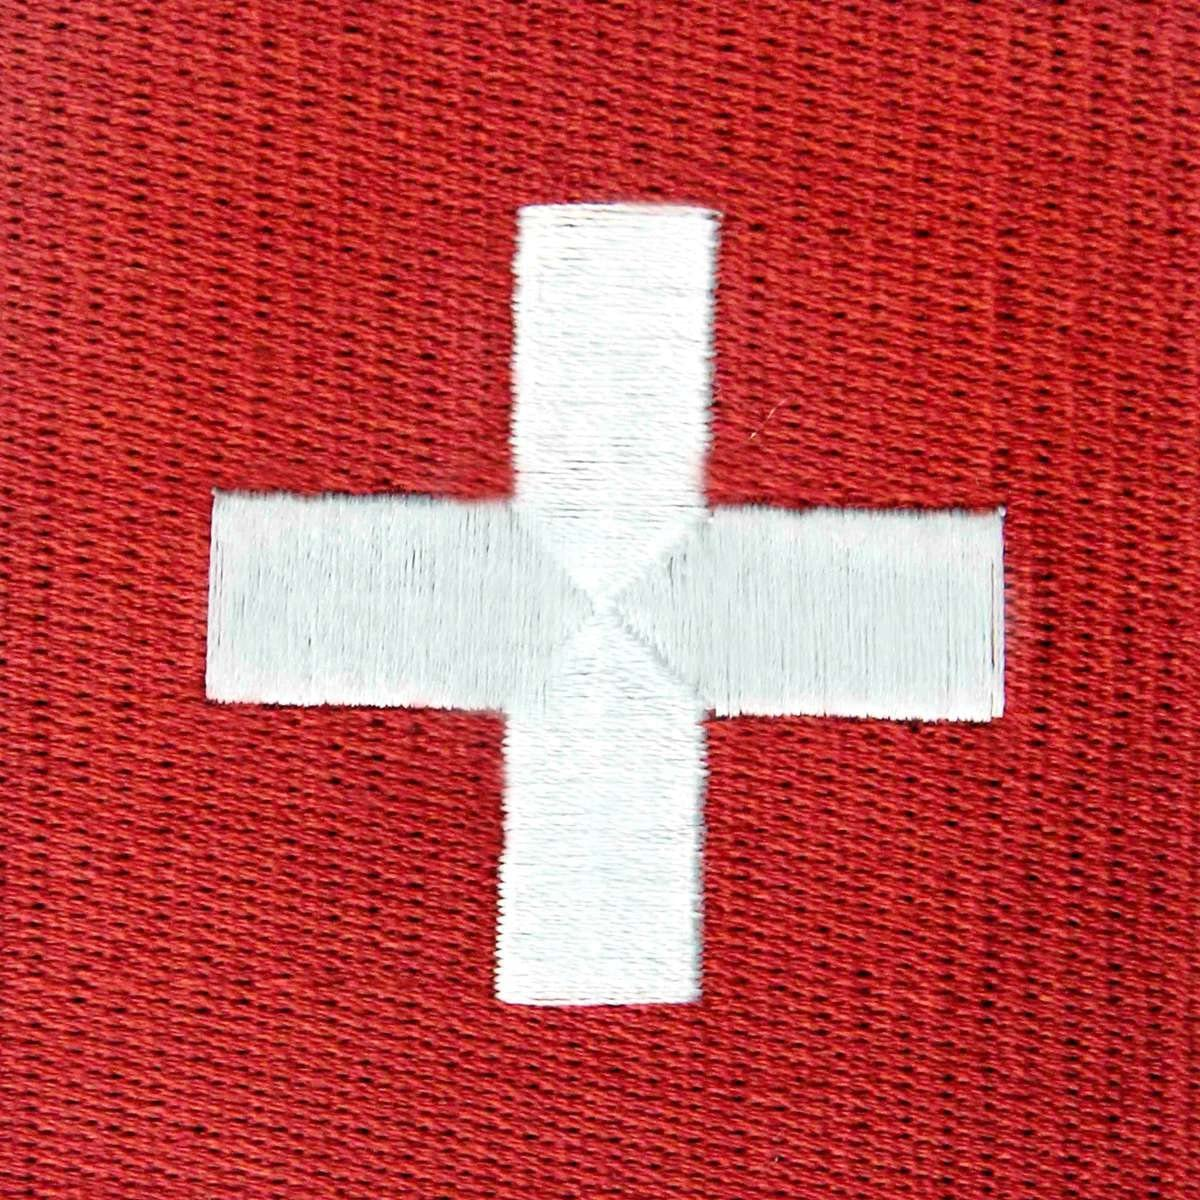 SWITZERLAND Flag Embroidered Iron-On Patch Military Emblem Gold Border